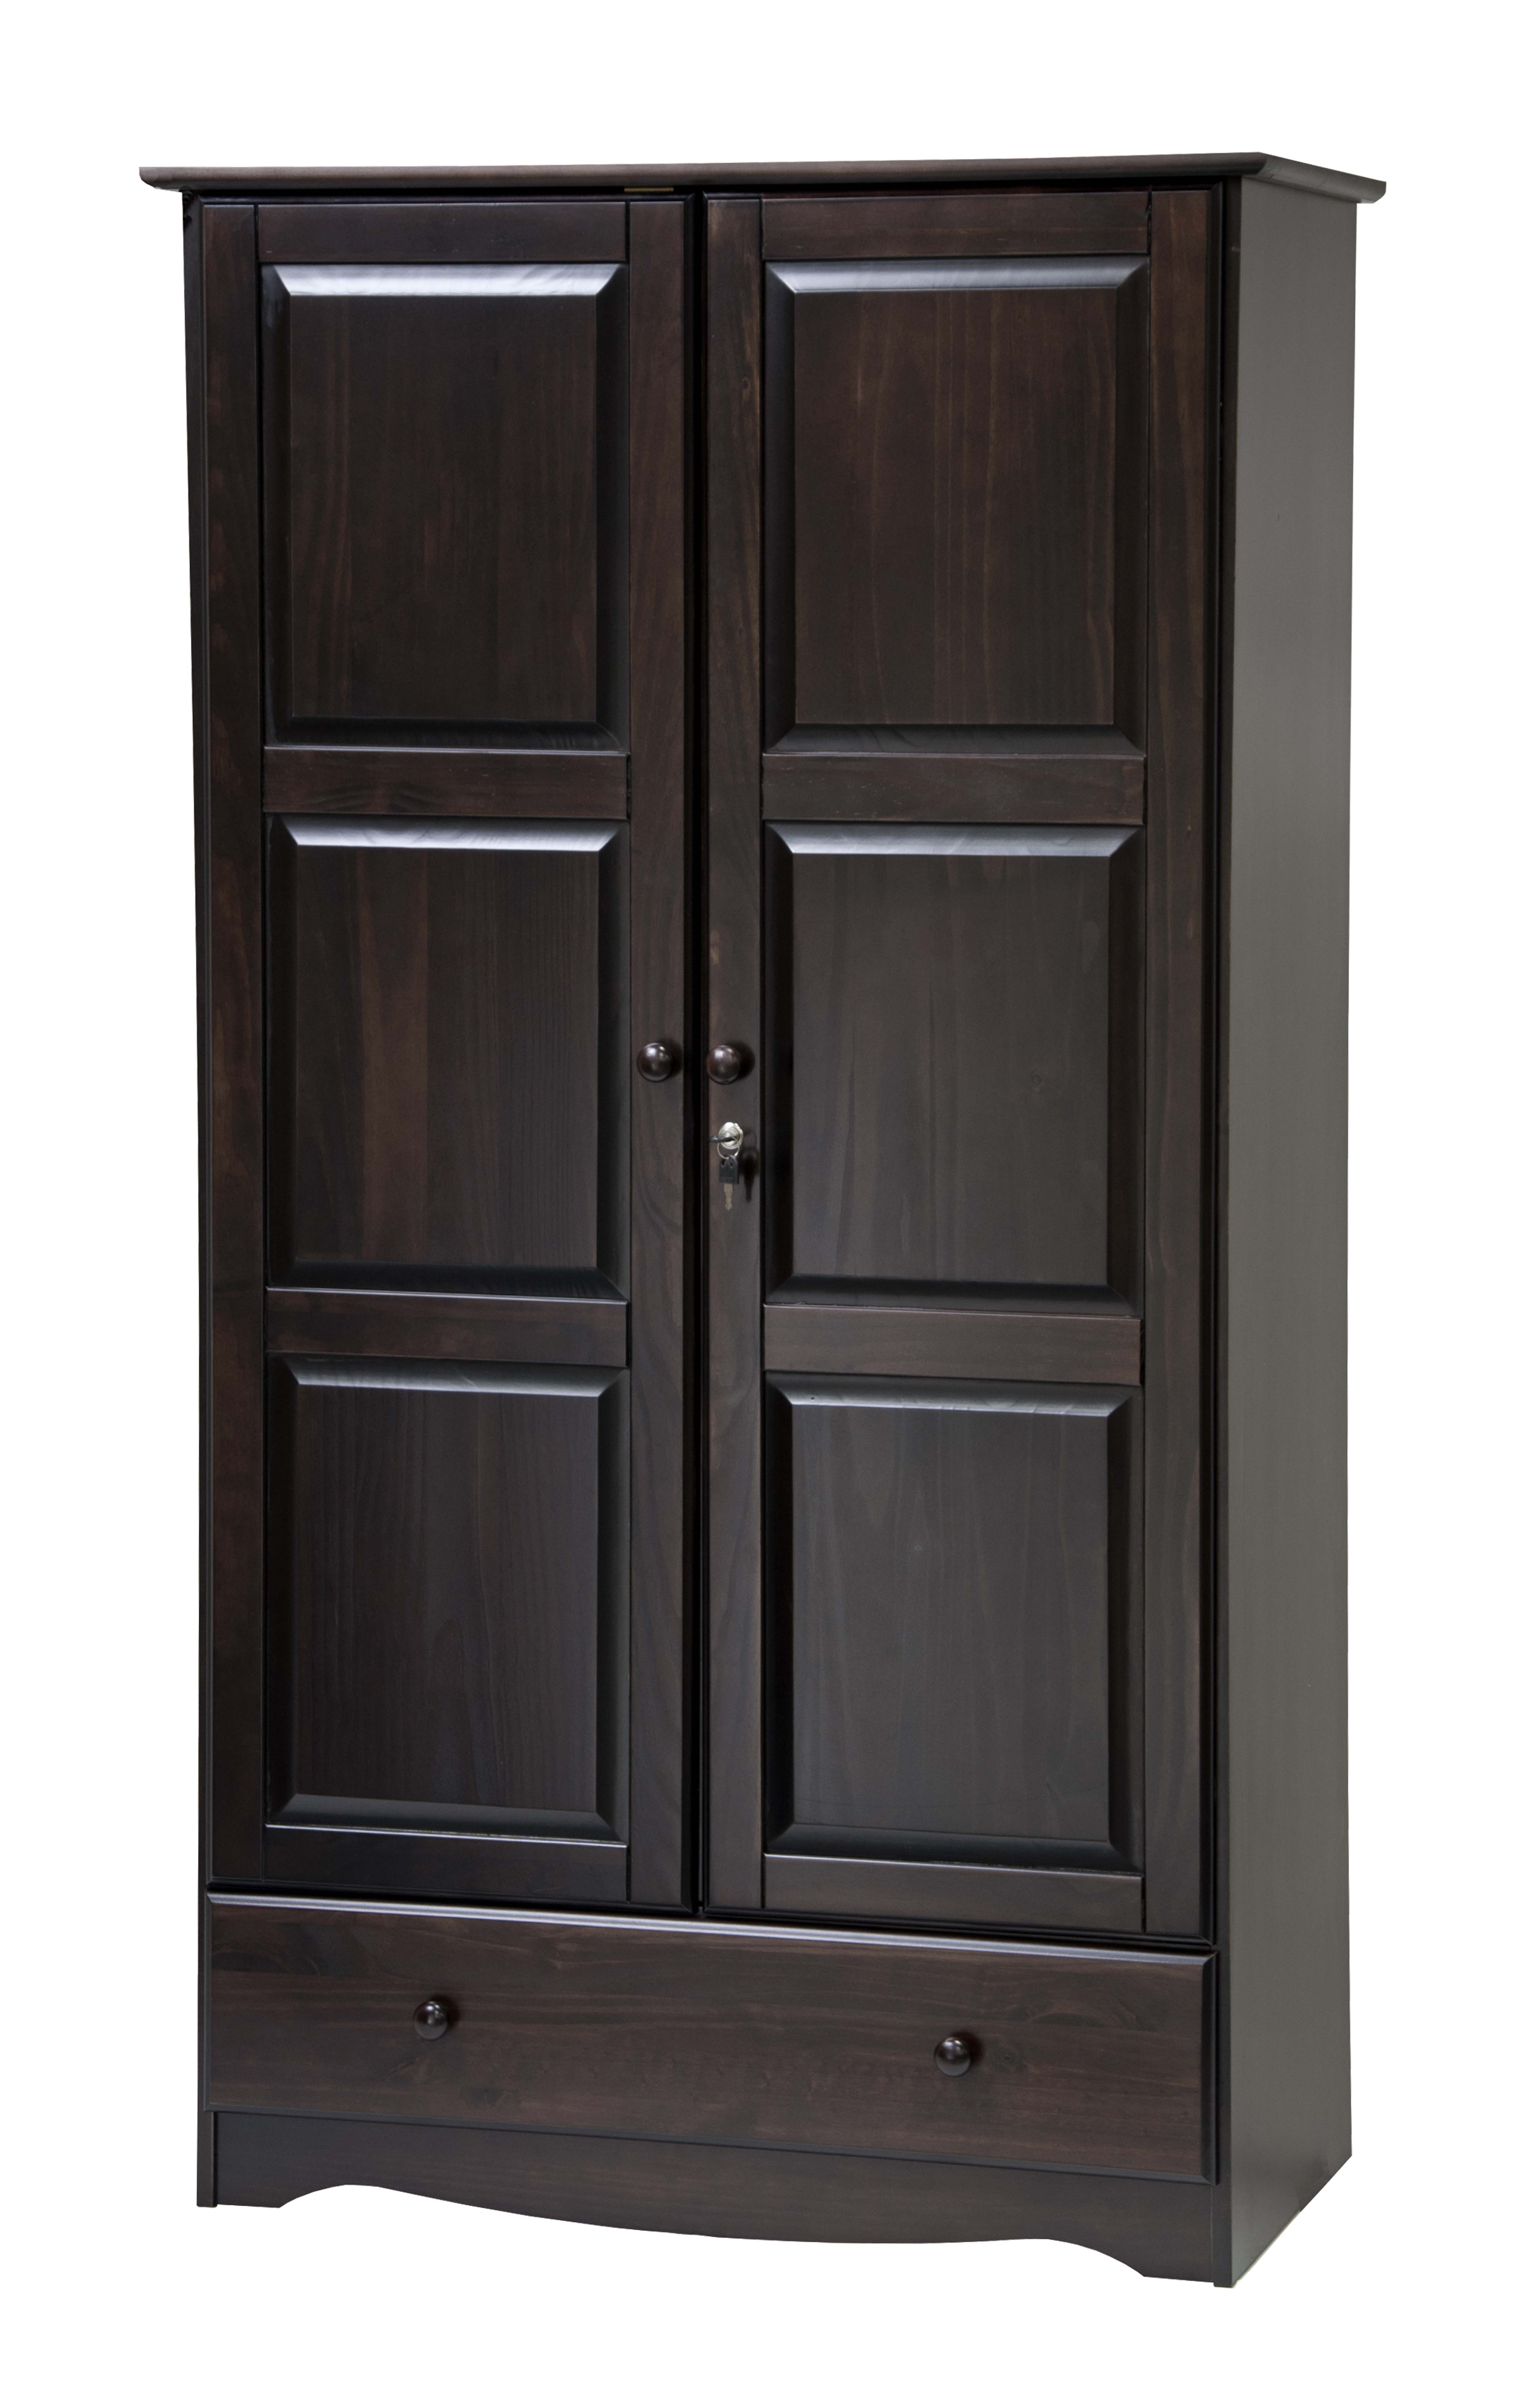 Palace Imports, 5622, Universal Wardrobe/Closet/Armoire With 1 Drawer, 2